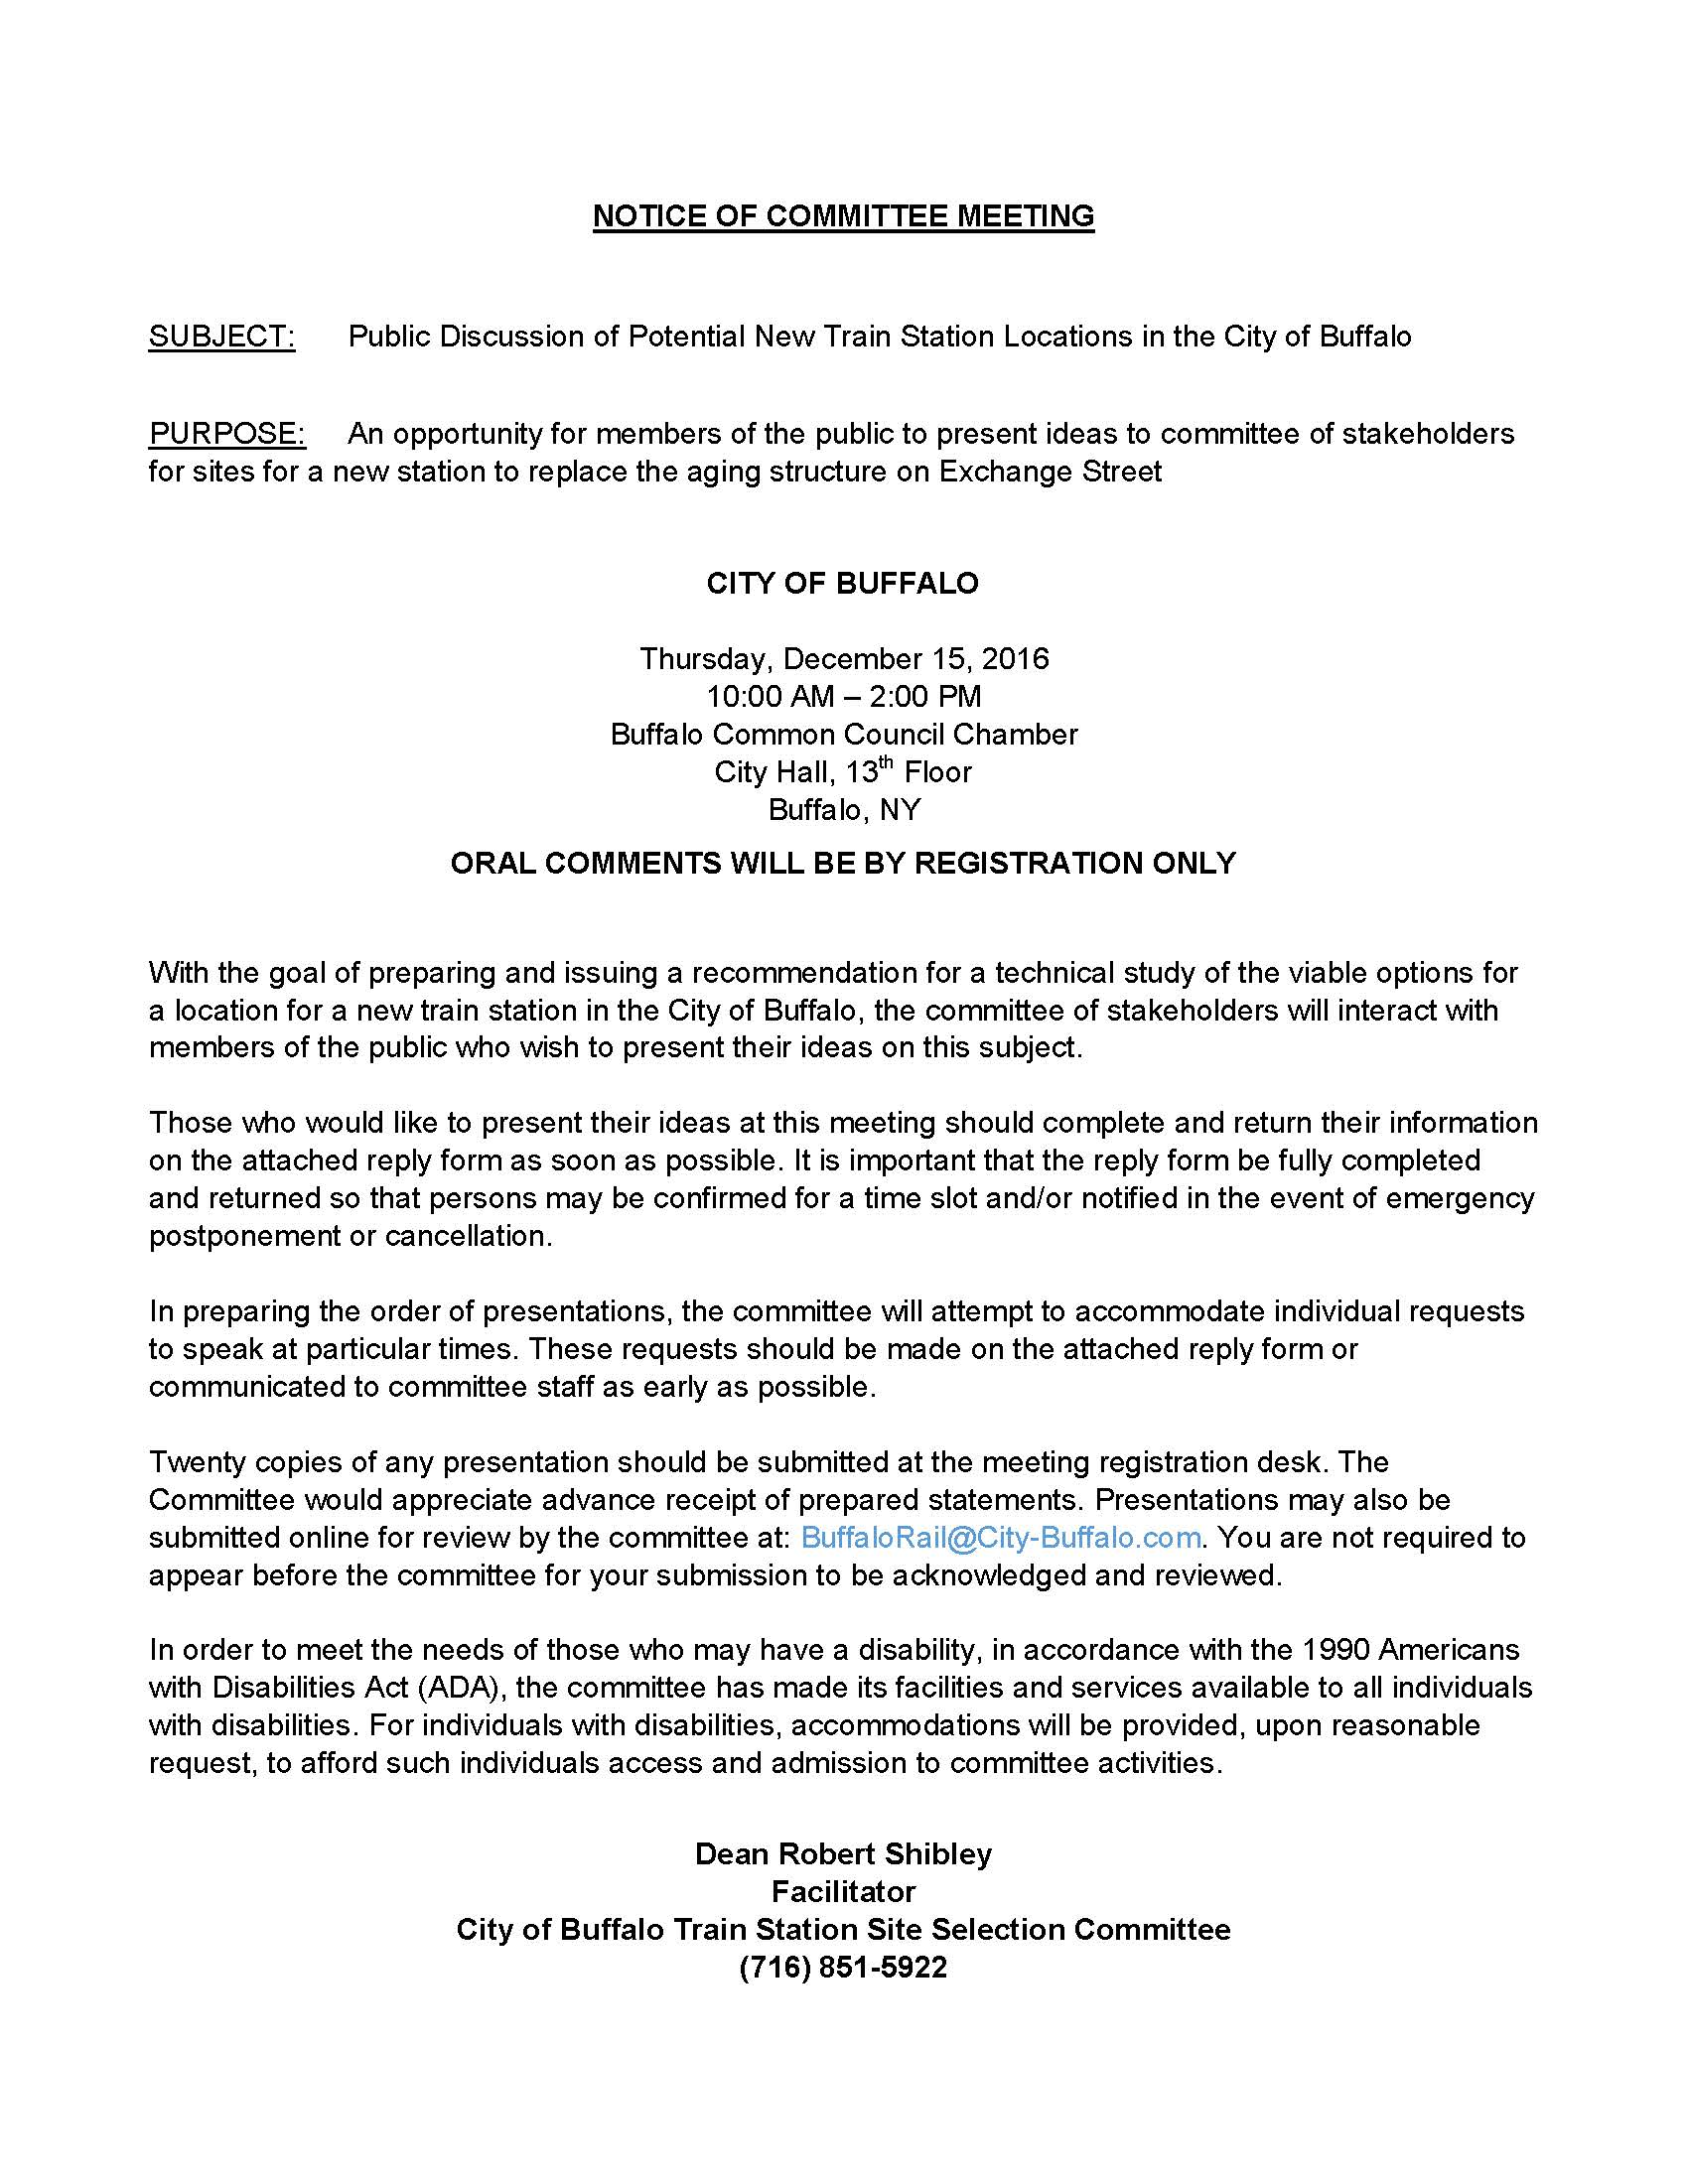 Notice of committee meeting congressman brian higgins blog post m4hsunfo